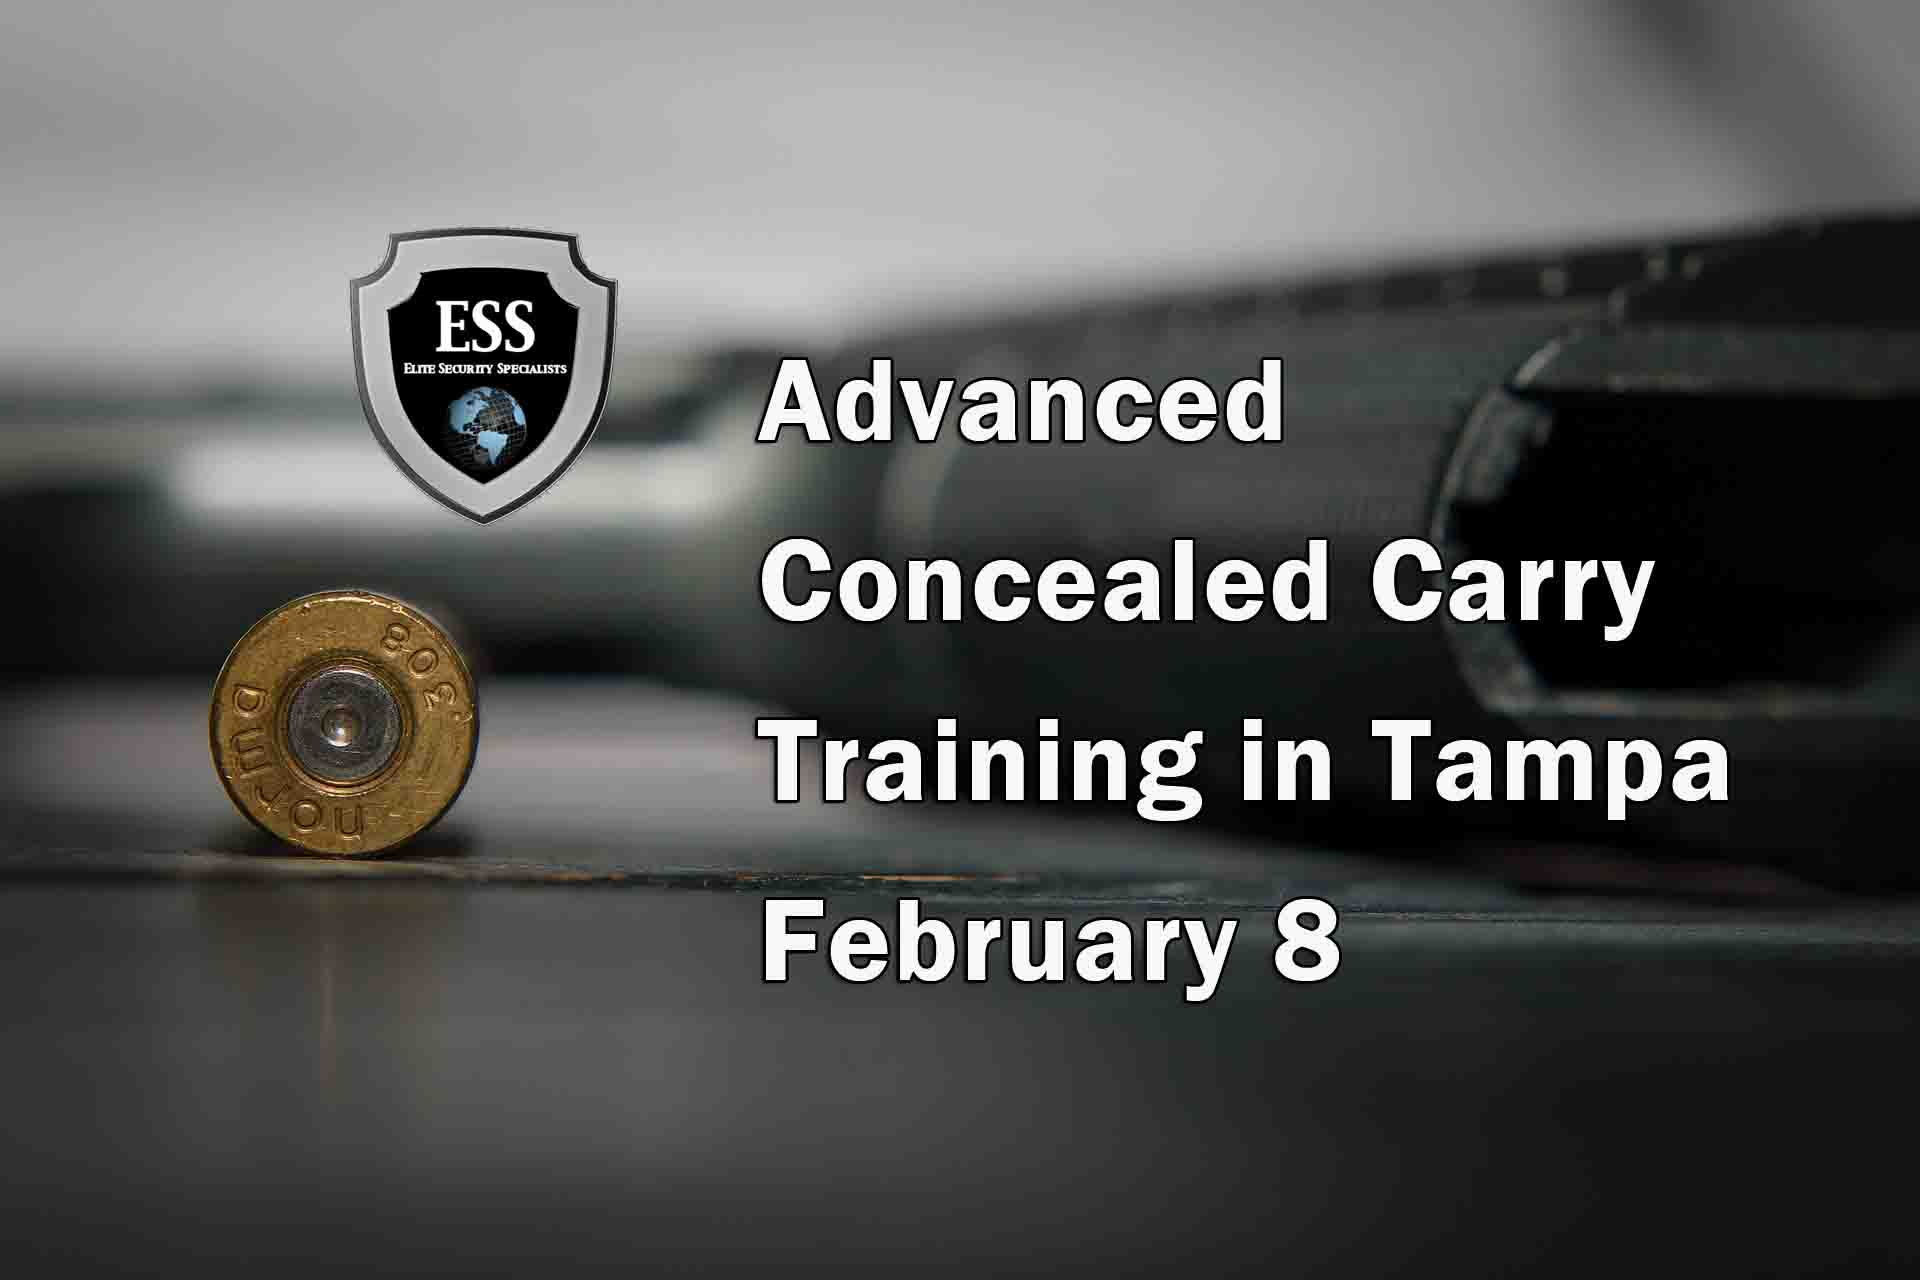 Advanced Concealed Carry Training in Tampa